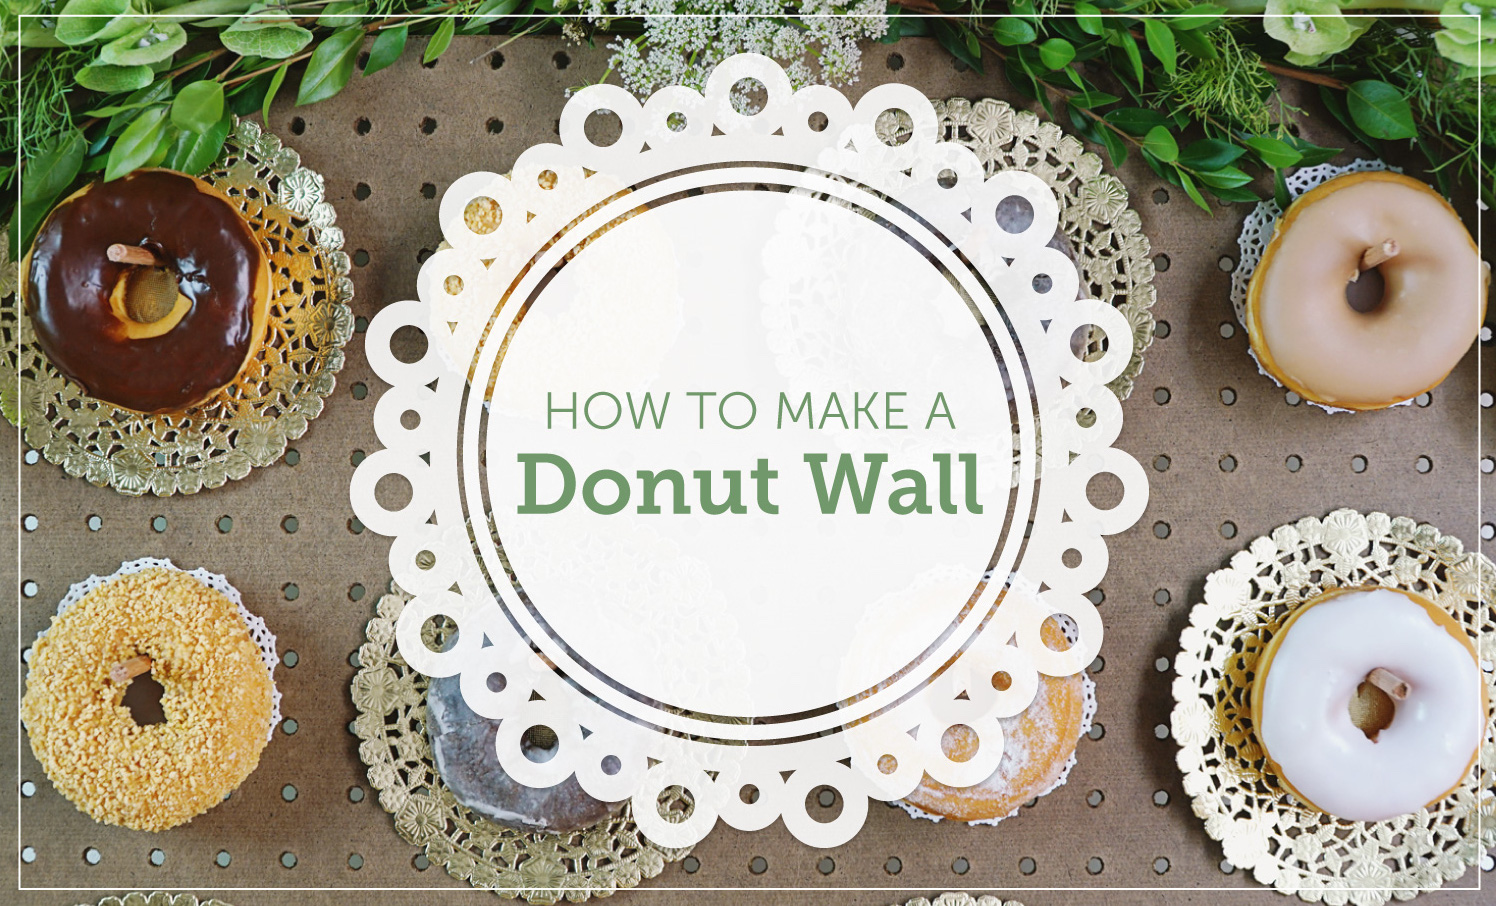 How to Make a Donut Wall